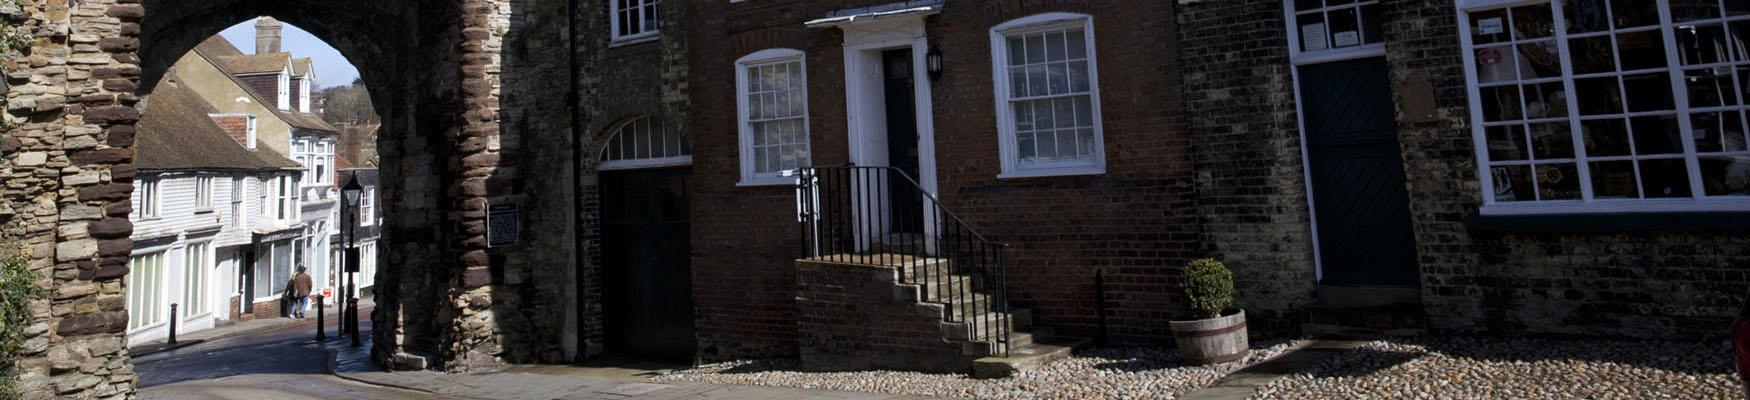 Rye buildings and arch on cobbled street